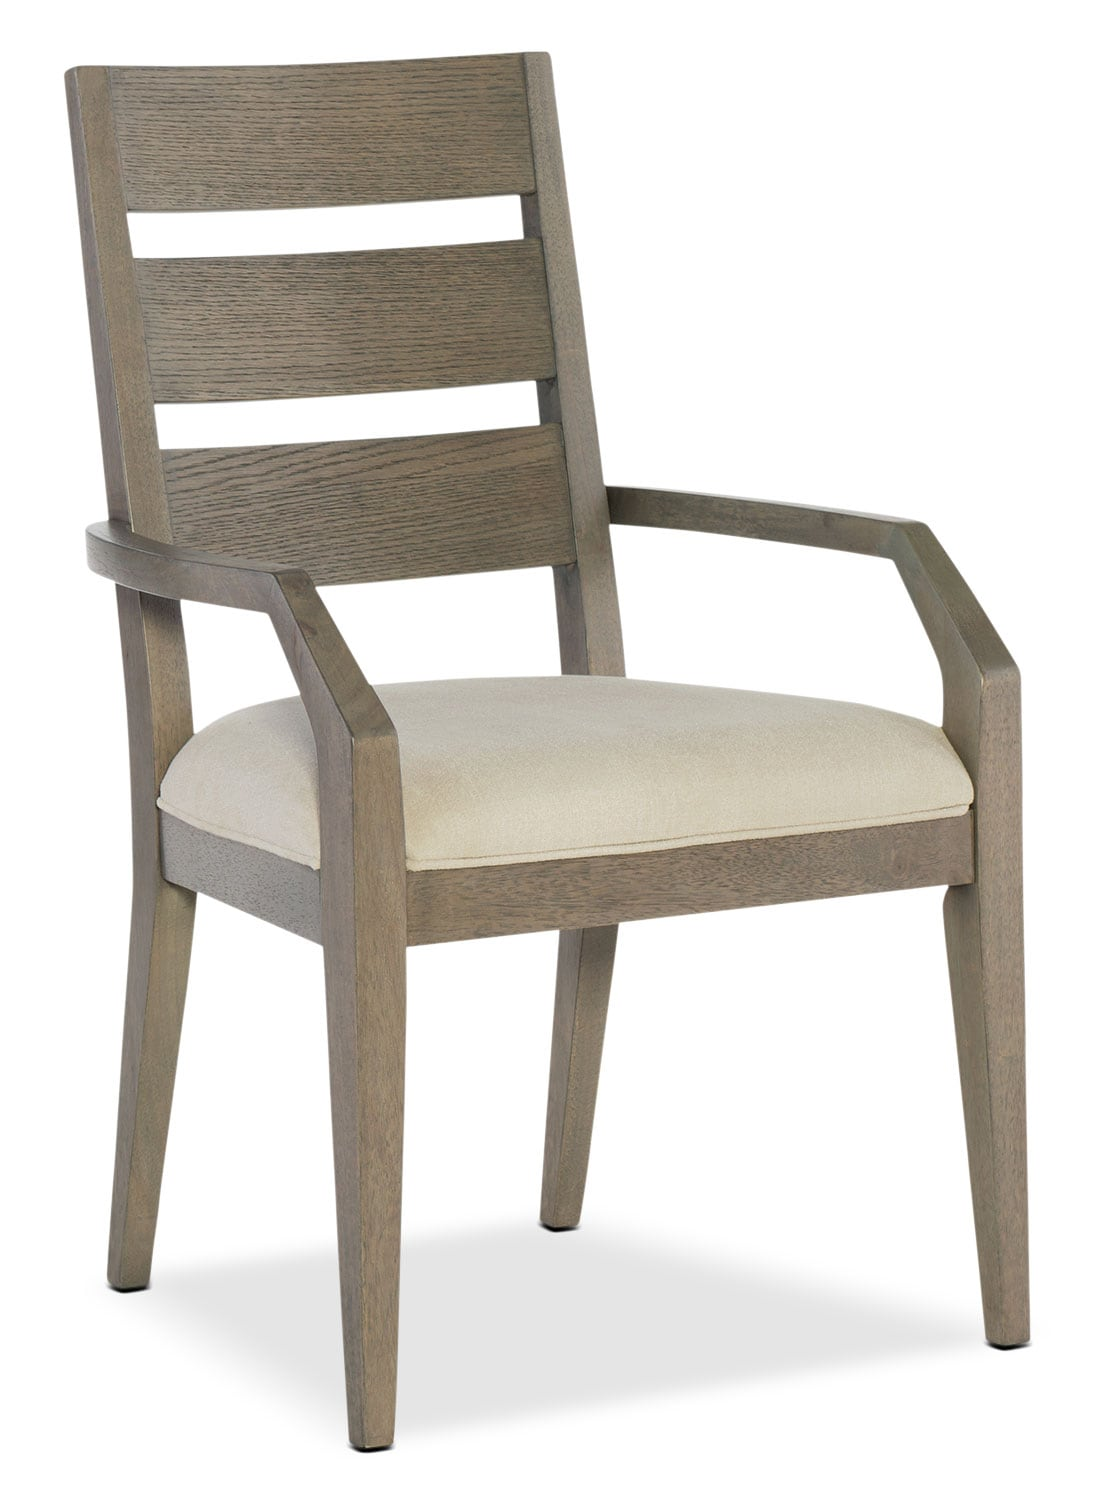 Rachael Ray Highline Ladder Arm Chair - Greige